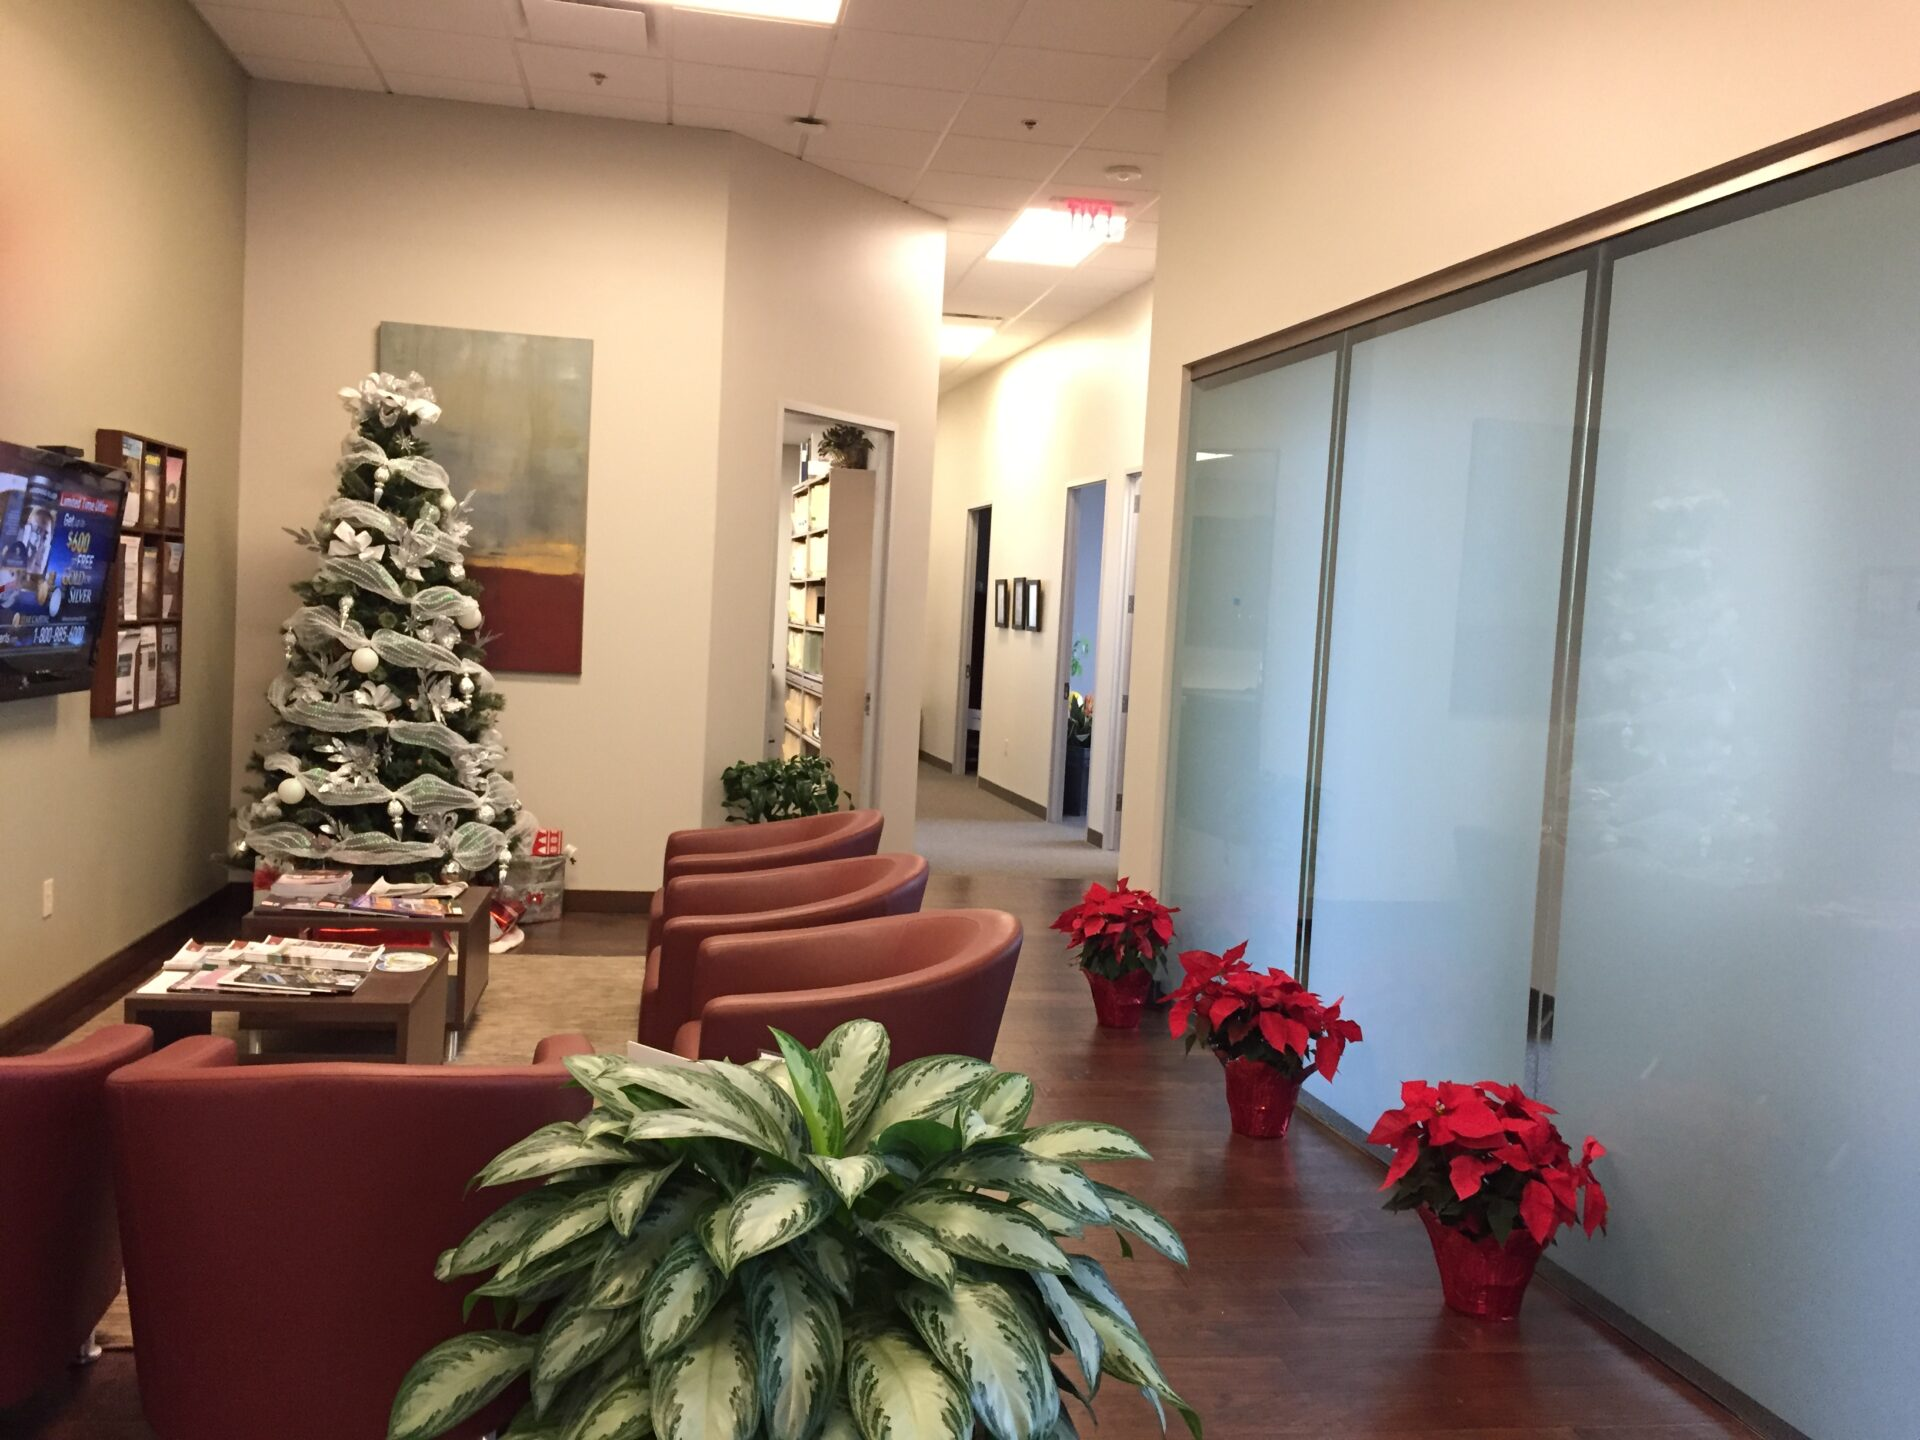 Christmas Decorations for Offices in Lewisville TX